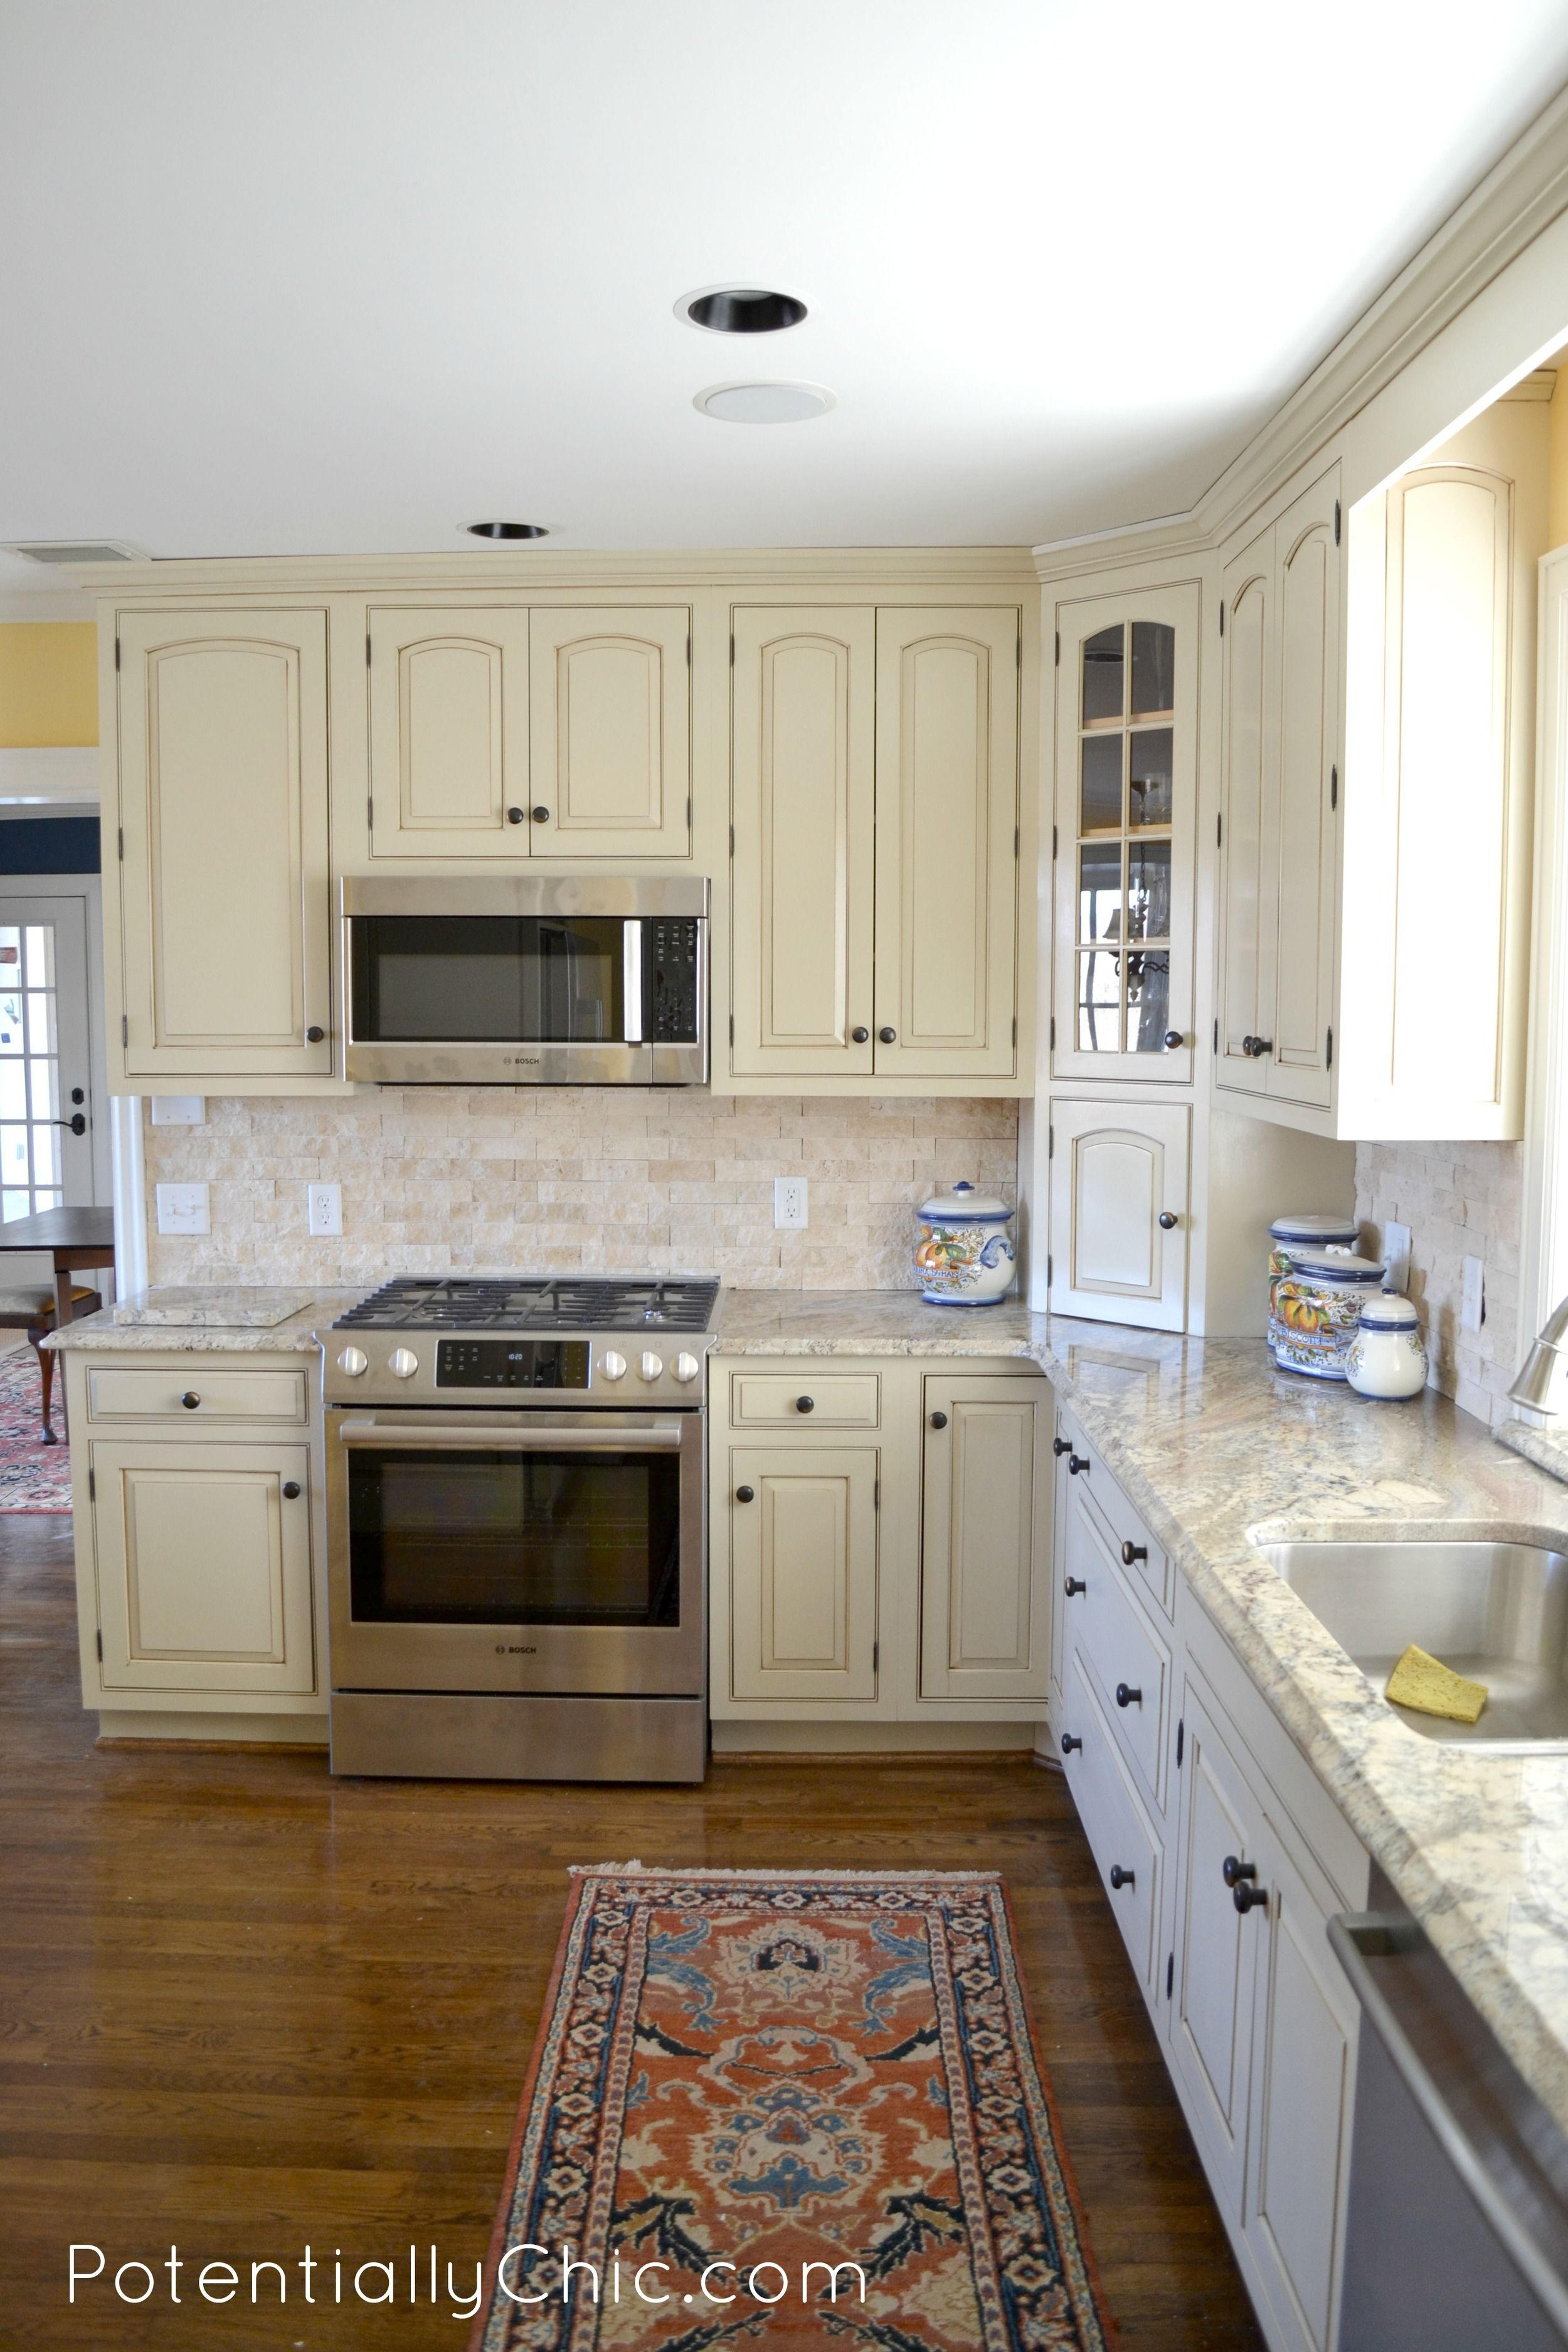 Wonderful Boone.kitchen.cabinets.linen.after.general.finishes.potentially.chic.2